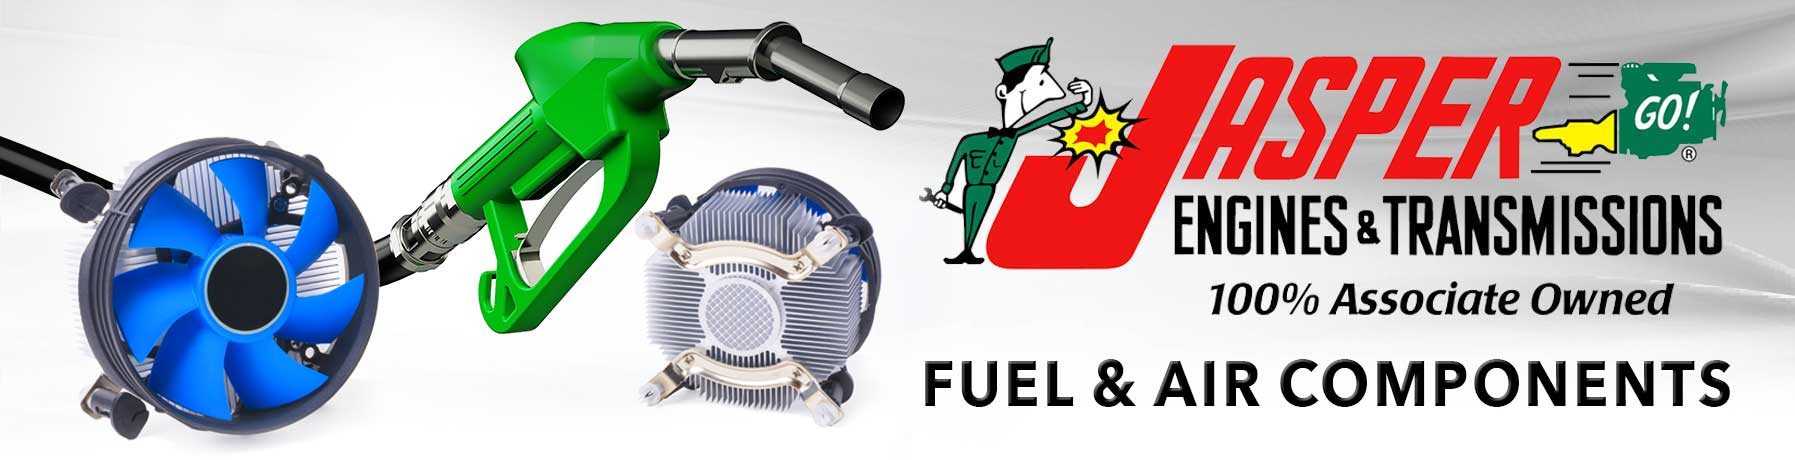 JASPER Fuel & Air Components Banner